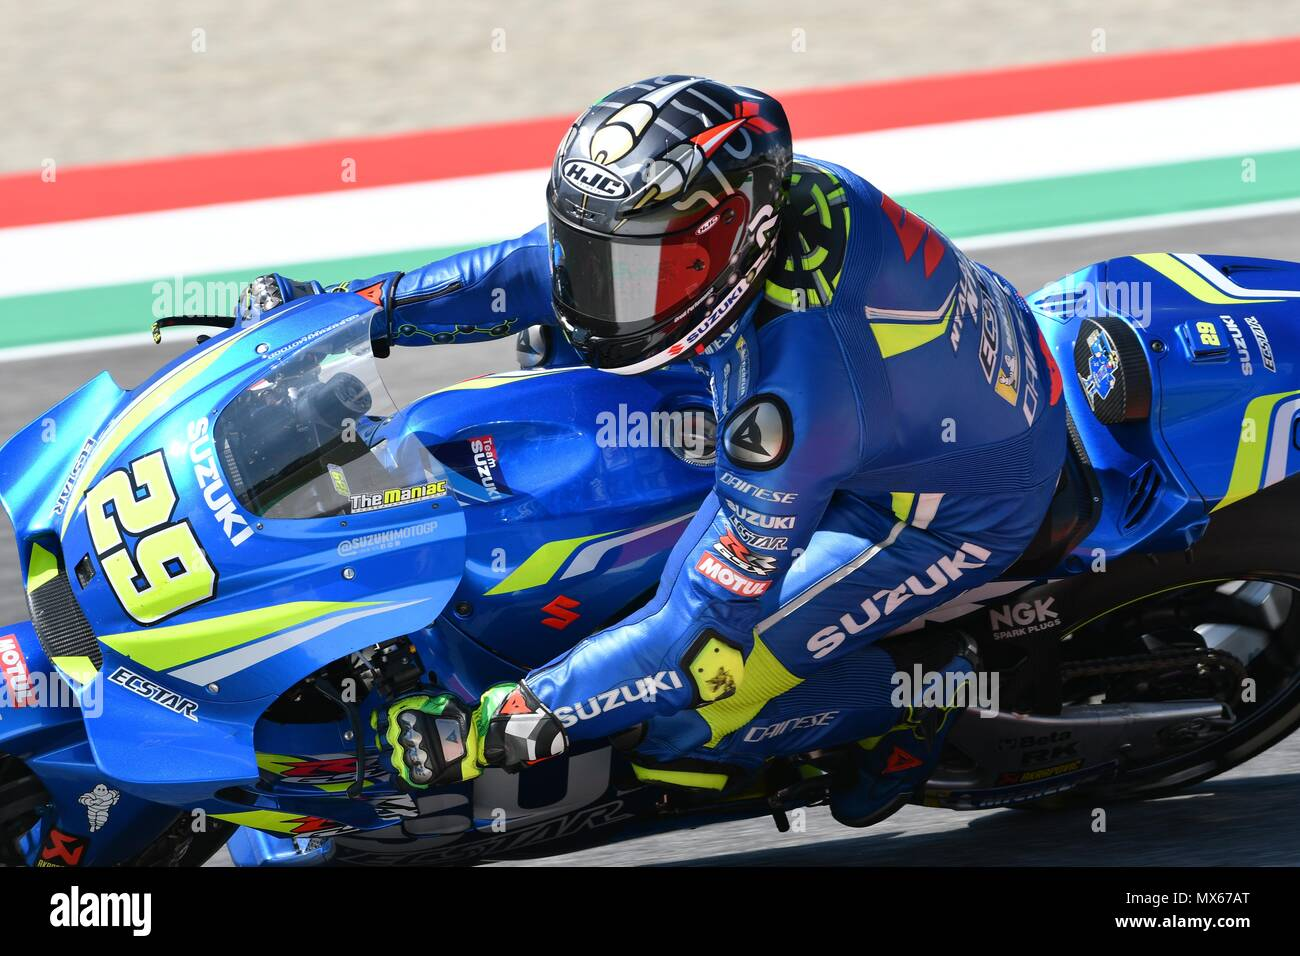 Mugello Circuit, Italy. 2nd Jun, 2018.  Italian Suzuki Ecstar Team rider Andrea Iannone during Qualifying session at 2018 GP of Italy of MotoGP on June,  2018 in Italy Credit: dan74/Alamy Live News - Stock Image